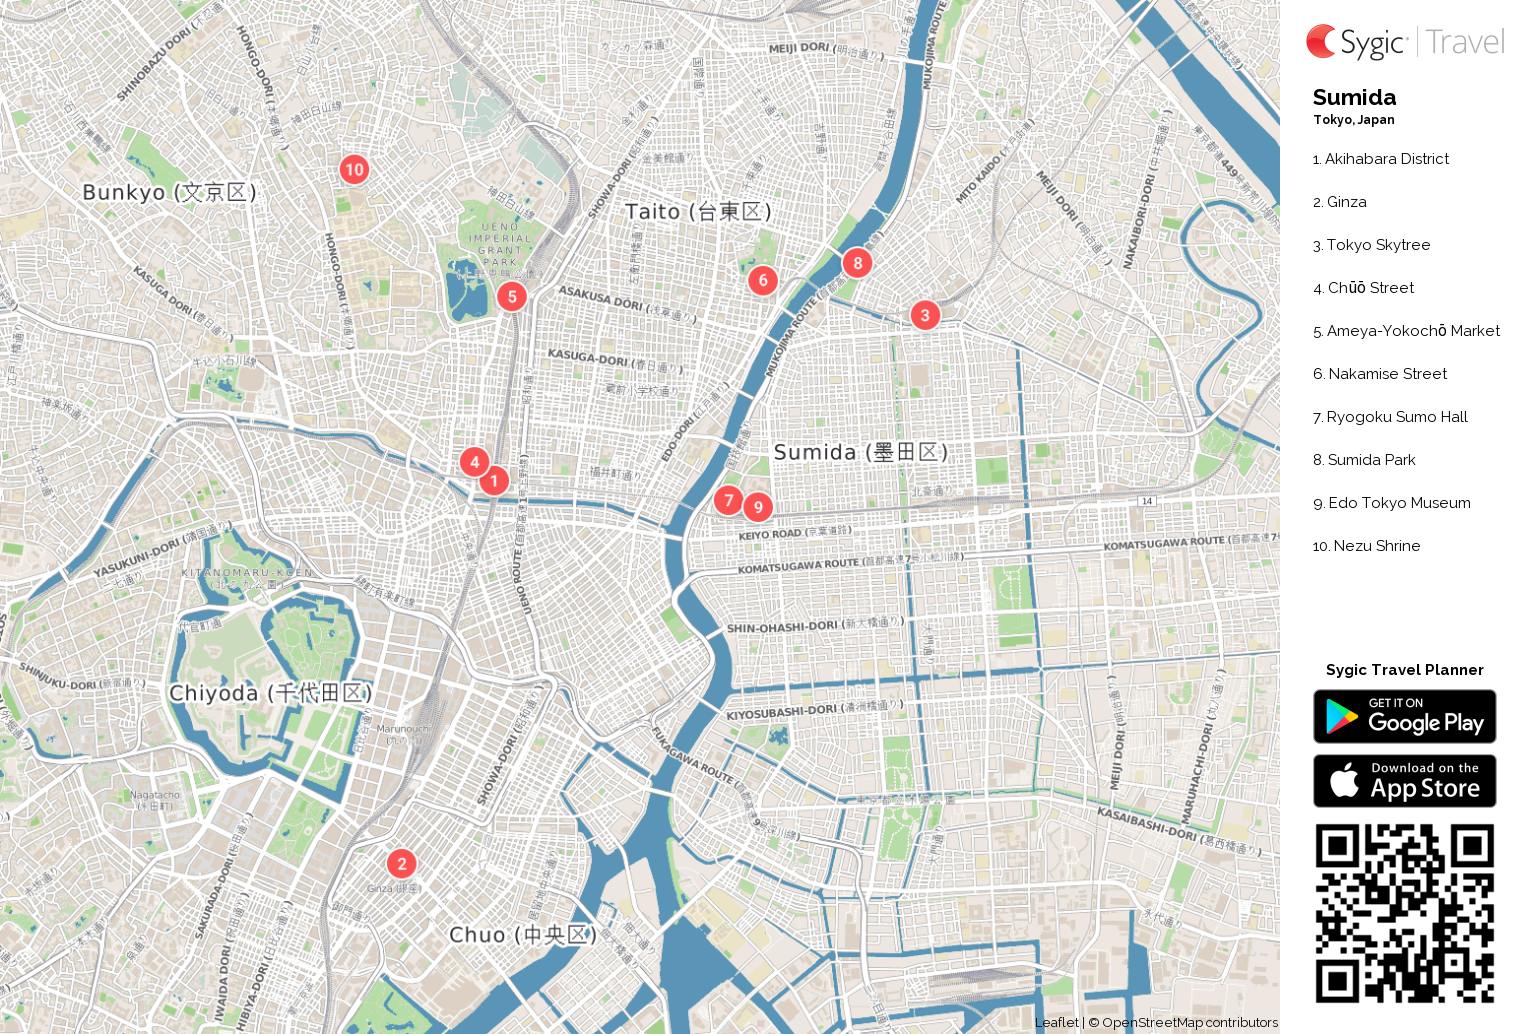 sumida-printable-tourist-map